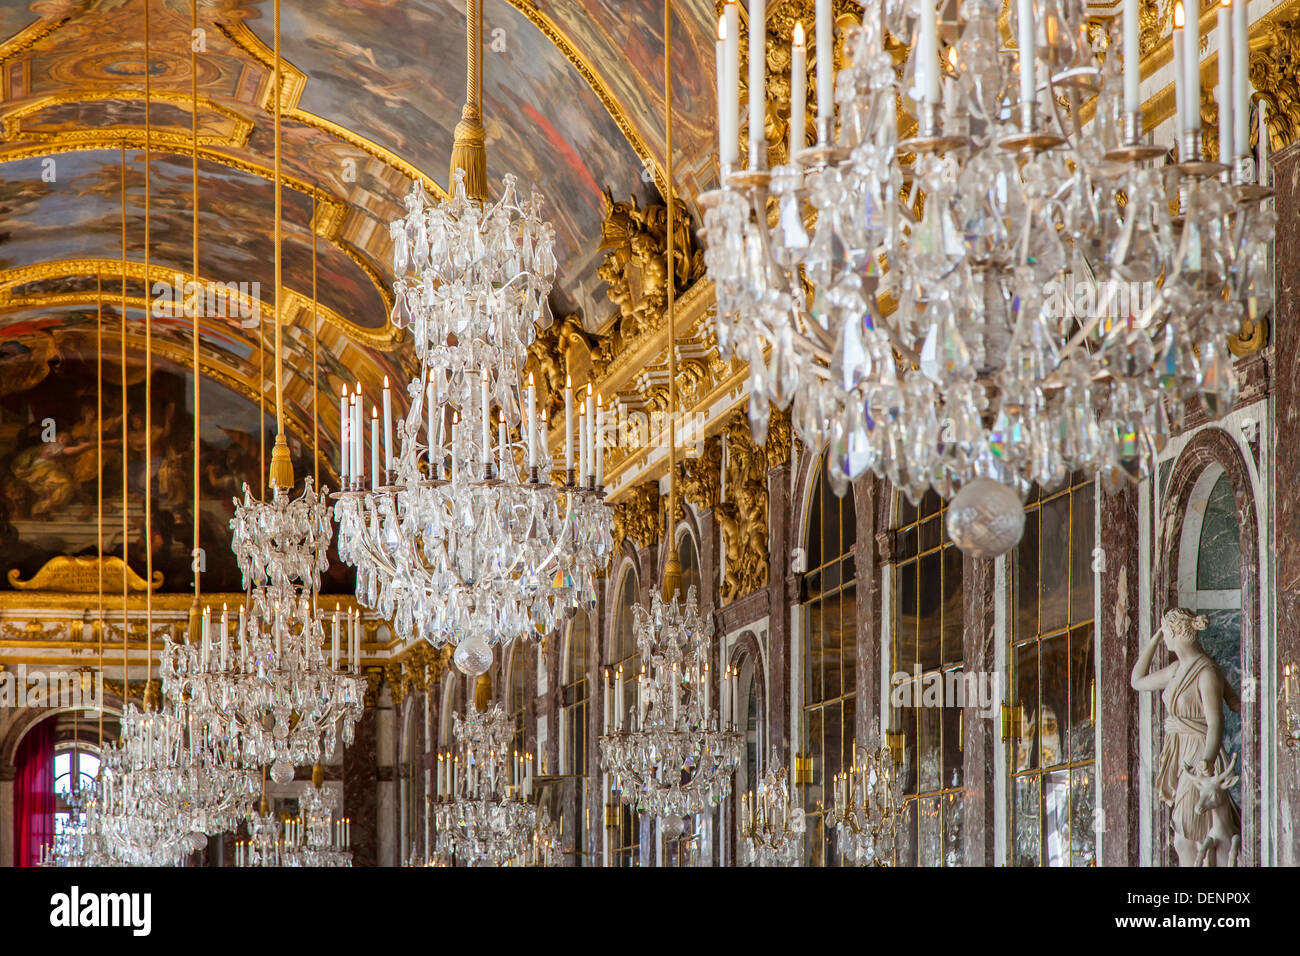 Ceiling and chandeliers lustre in the hall of mirrors cahteau de ceiling and chandeliers lustre in the hall of mirrors cahteau de versailles france aloadofball Images